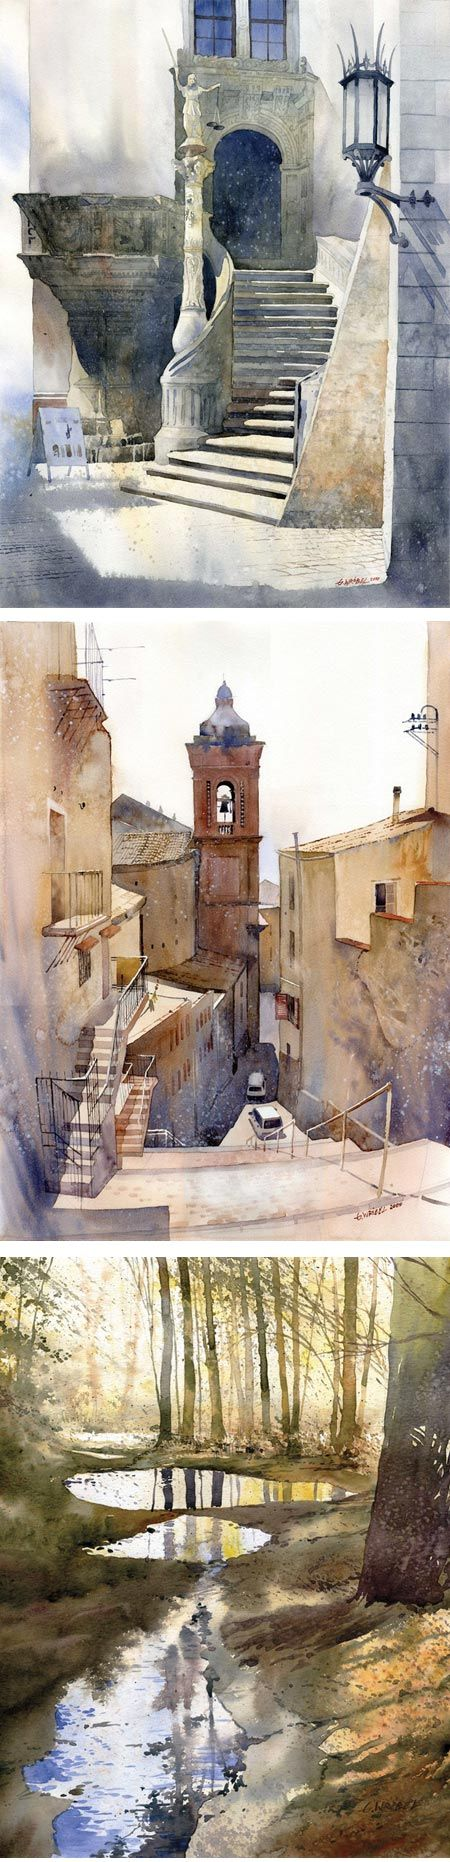 classic watercolor paintings | blog about drawing, painting, illustration, comics, concept art ...